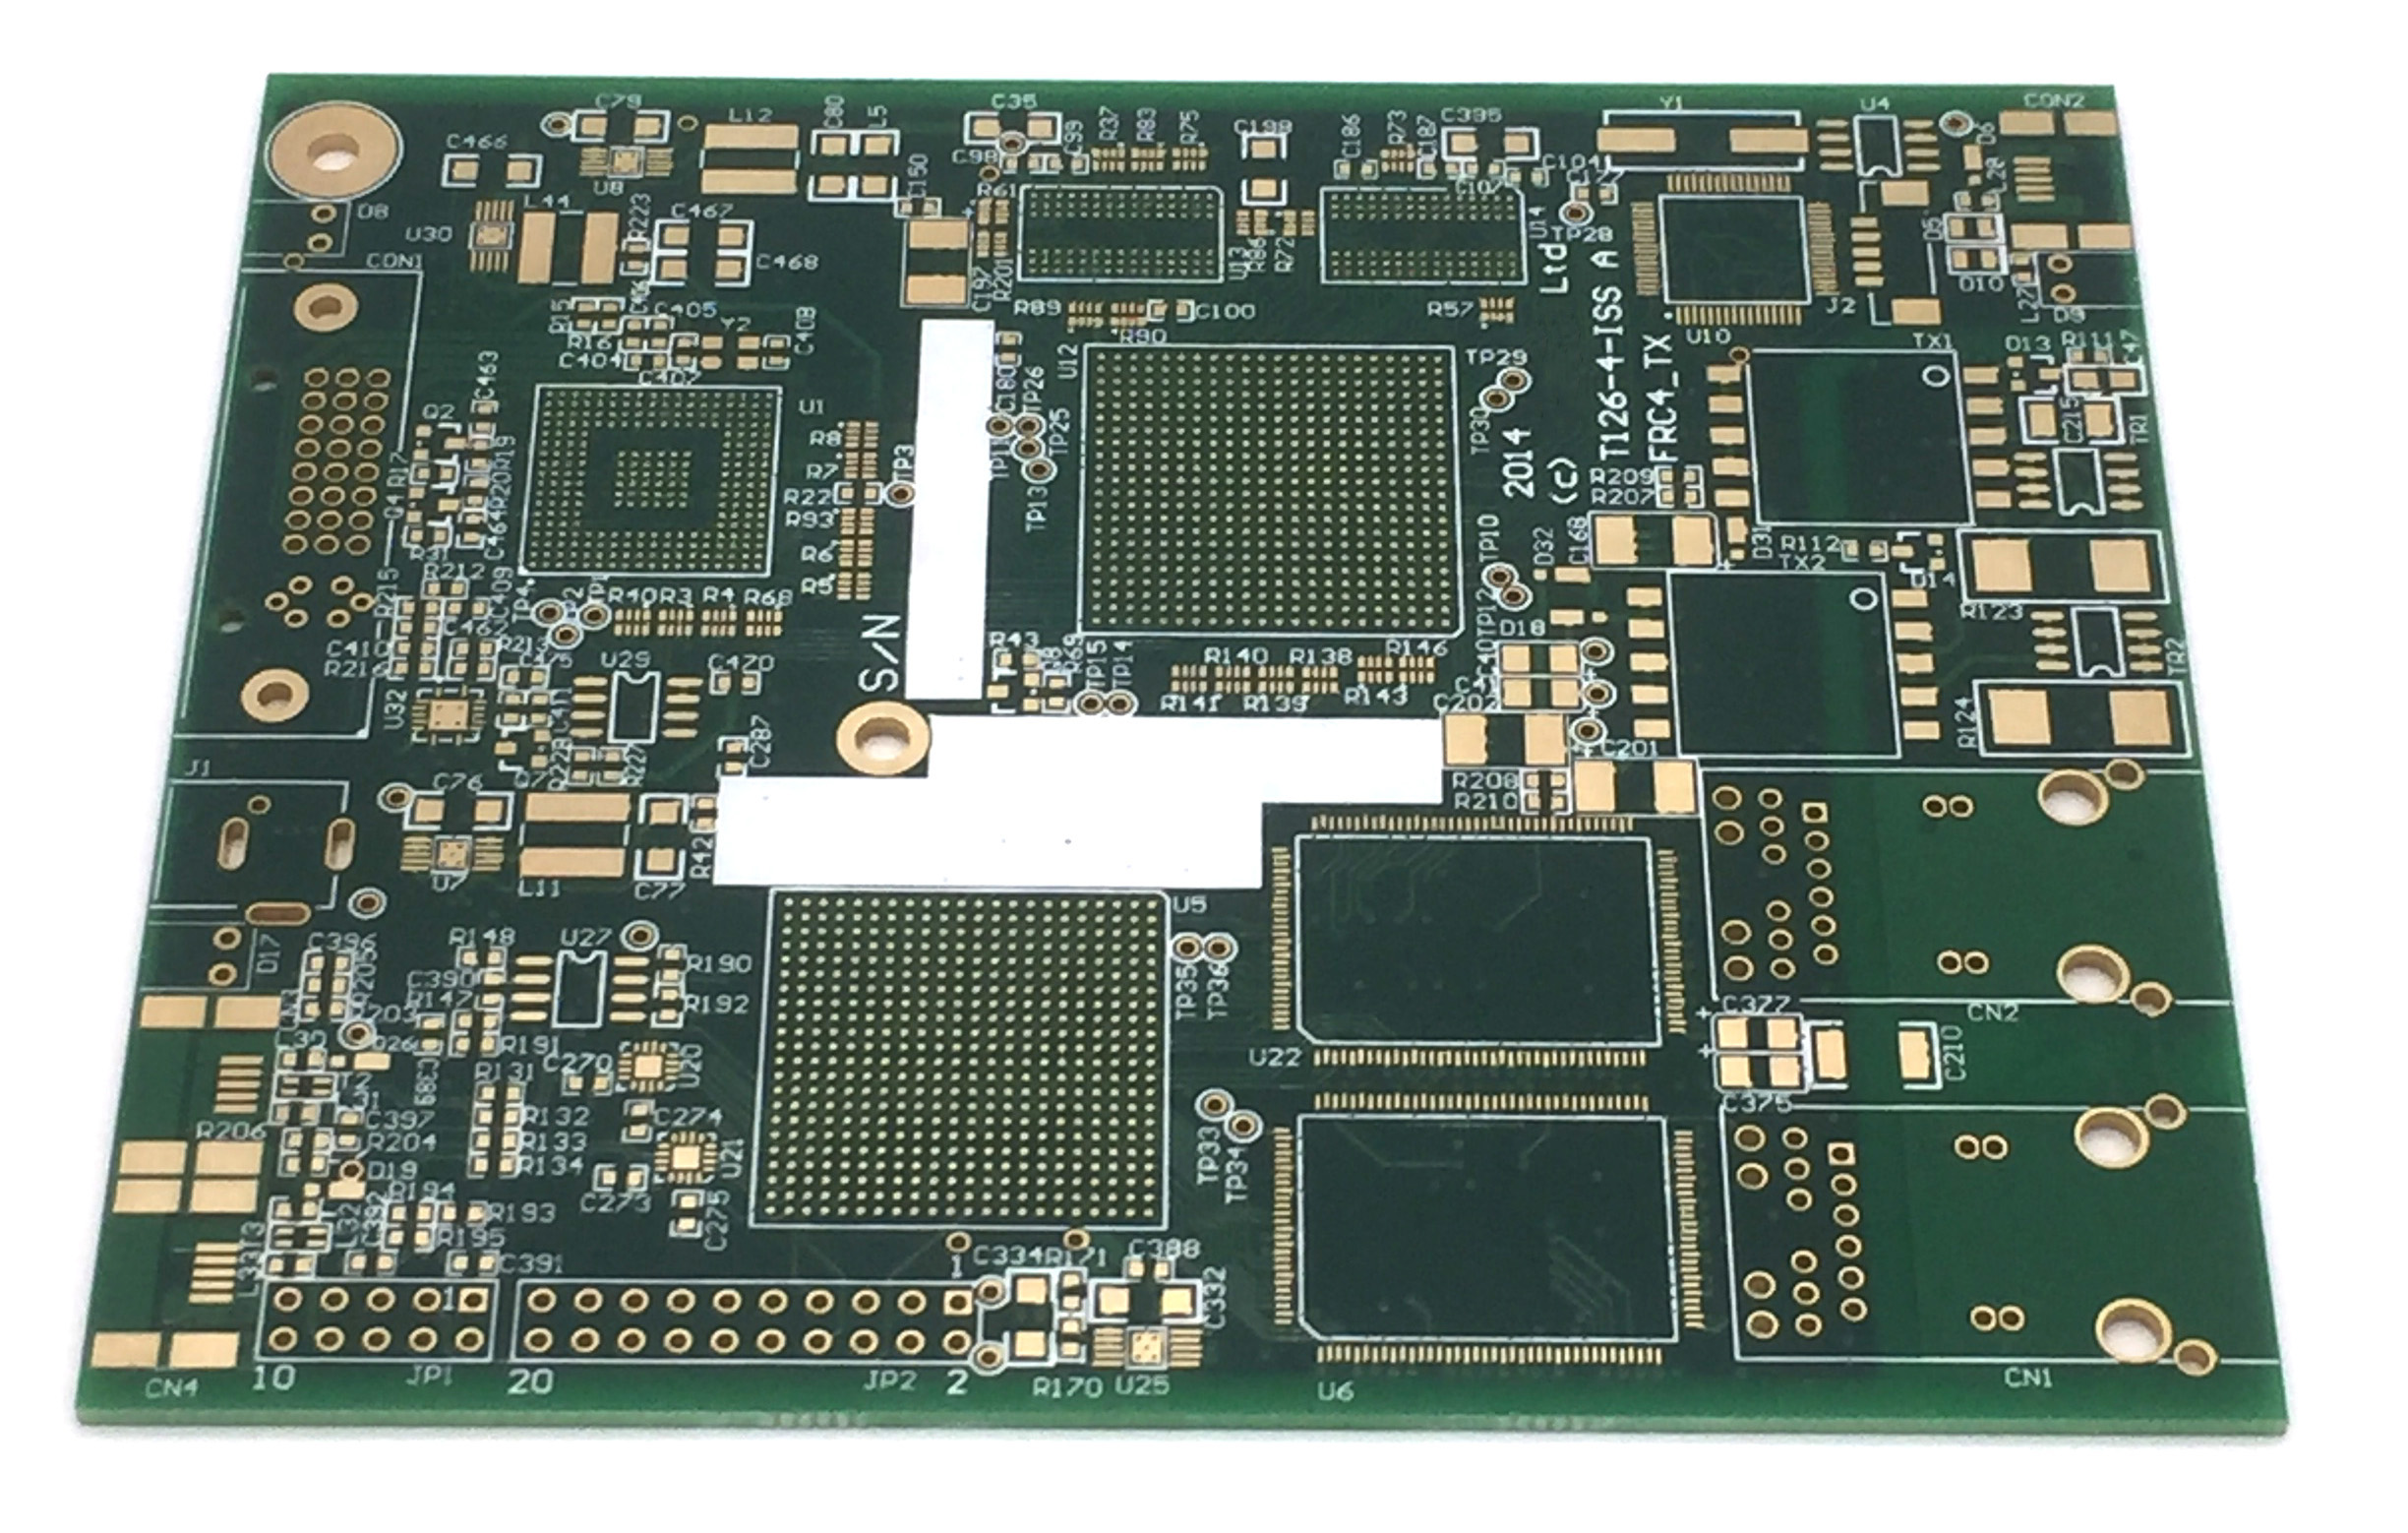 Shenzhen Golden Weald Electronic Coltd Pcb Pcbapcb Assembly Pcba Or Printed Circuit Board Electronics Co Ltd Is A Manufacturer Specializing In The Research Development Manufacture And Marketing Of Boards